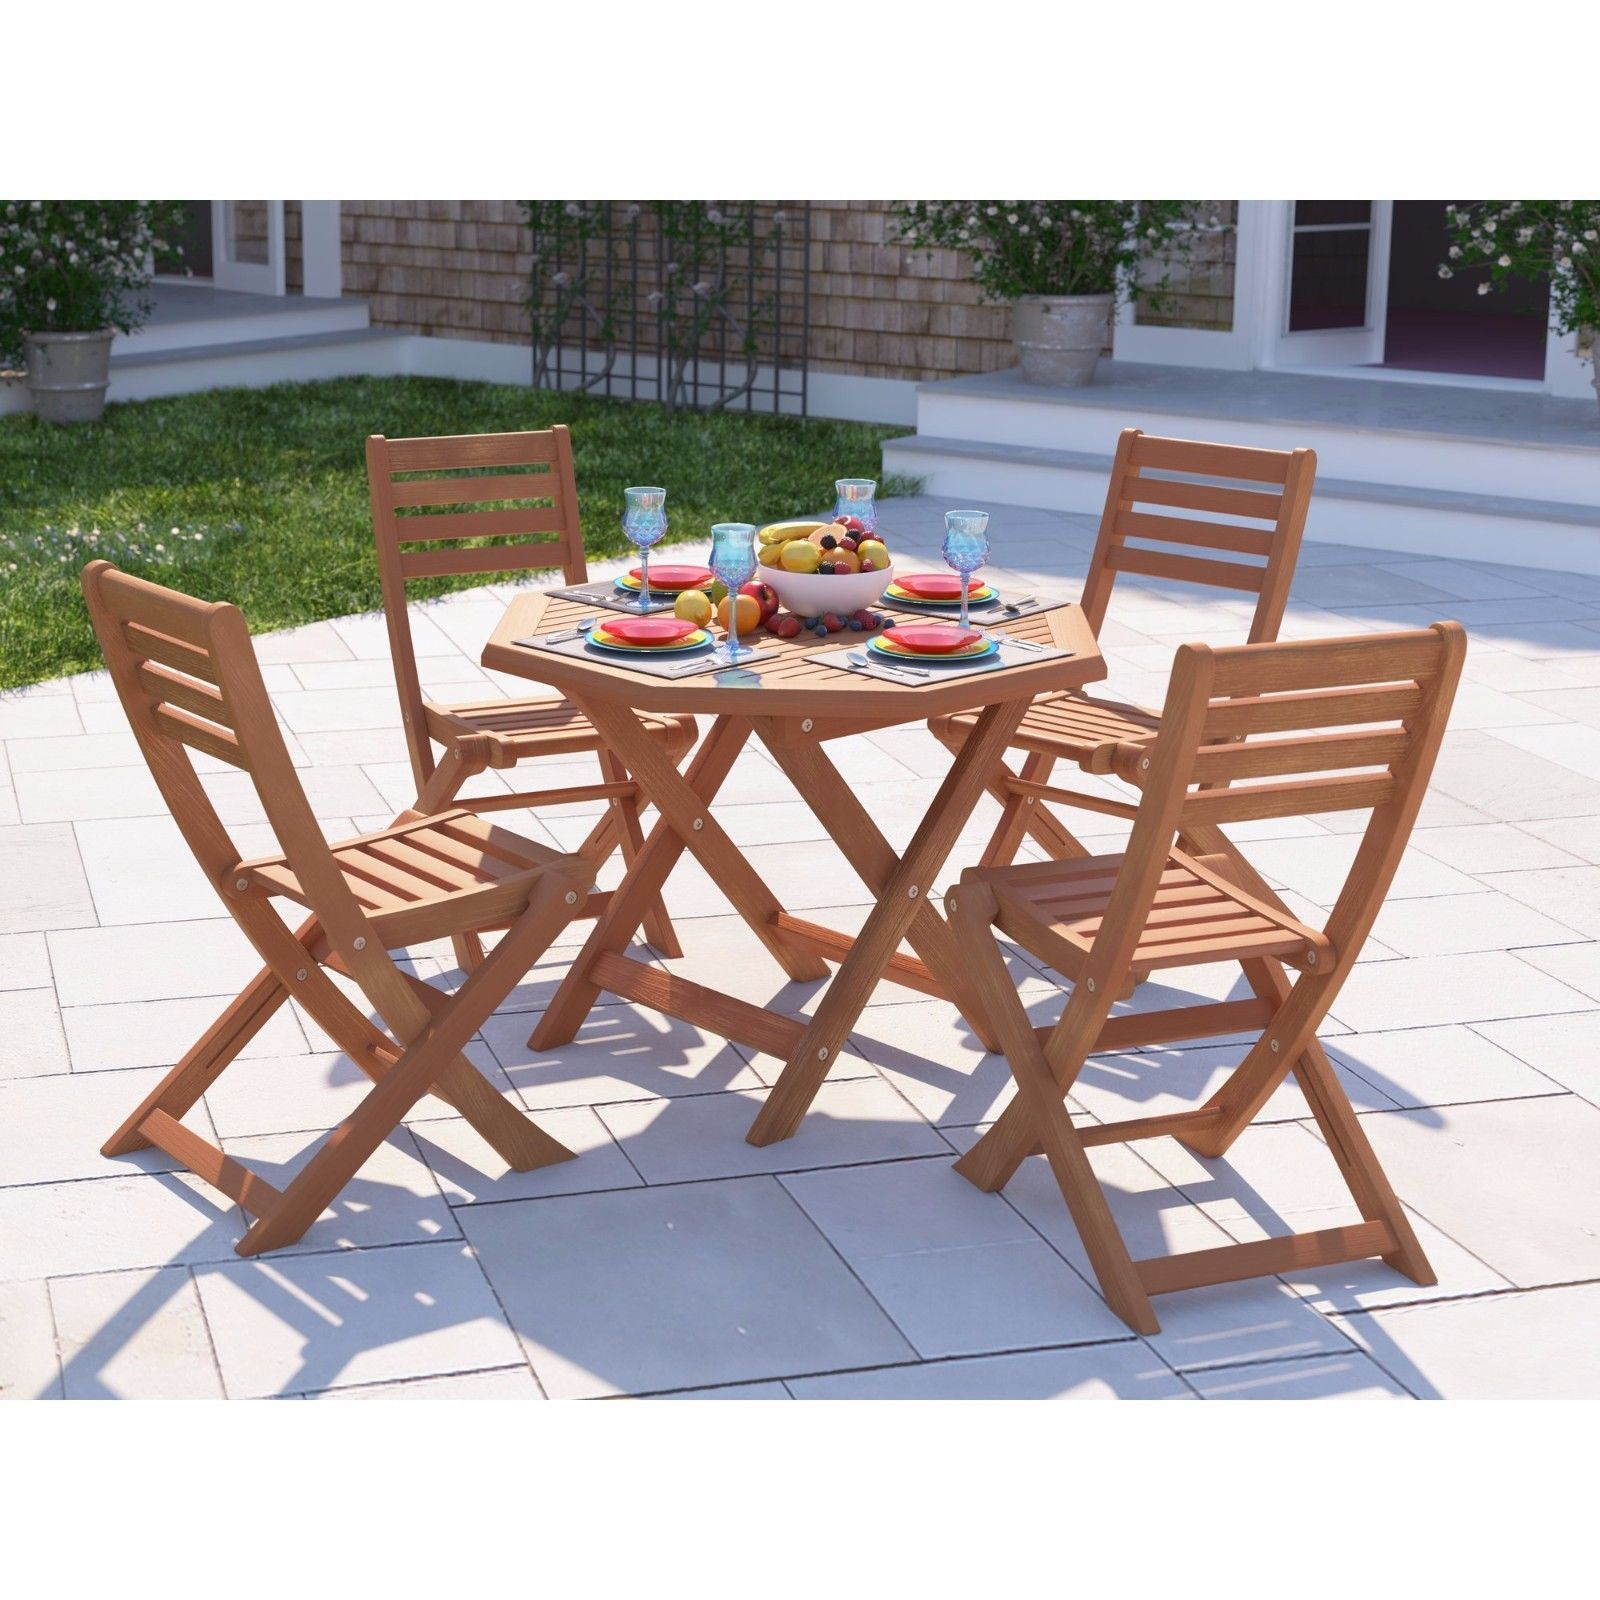 Patio dining set table 4 chairs garden furniture sets for Outdoor dining sets for 4